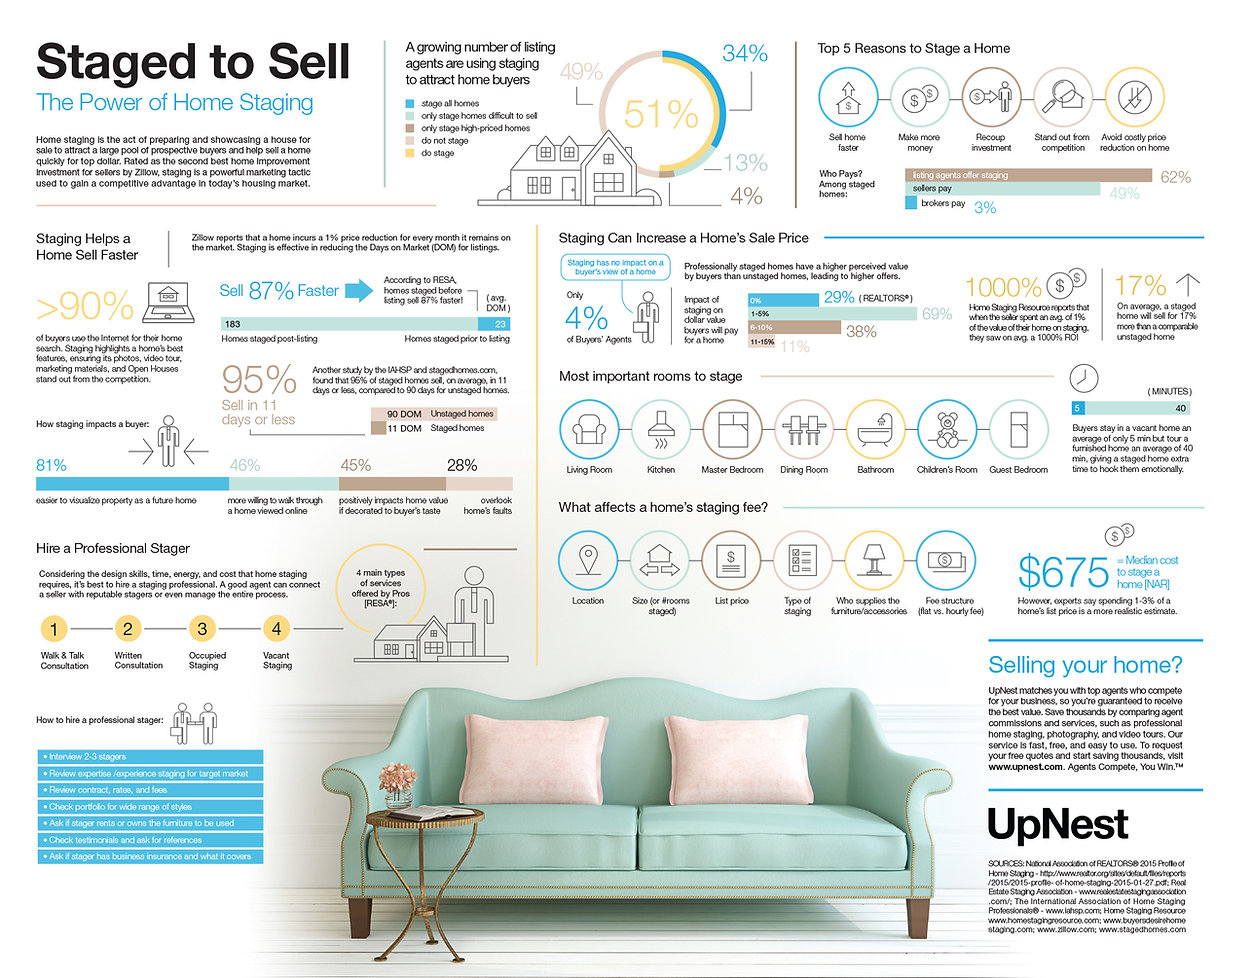 Power_of_home_staging_infographic.jpg